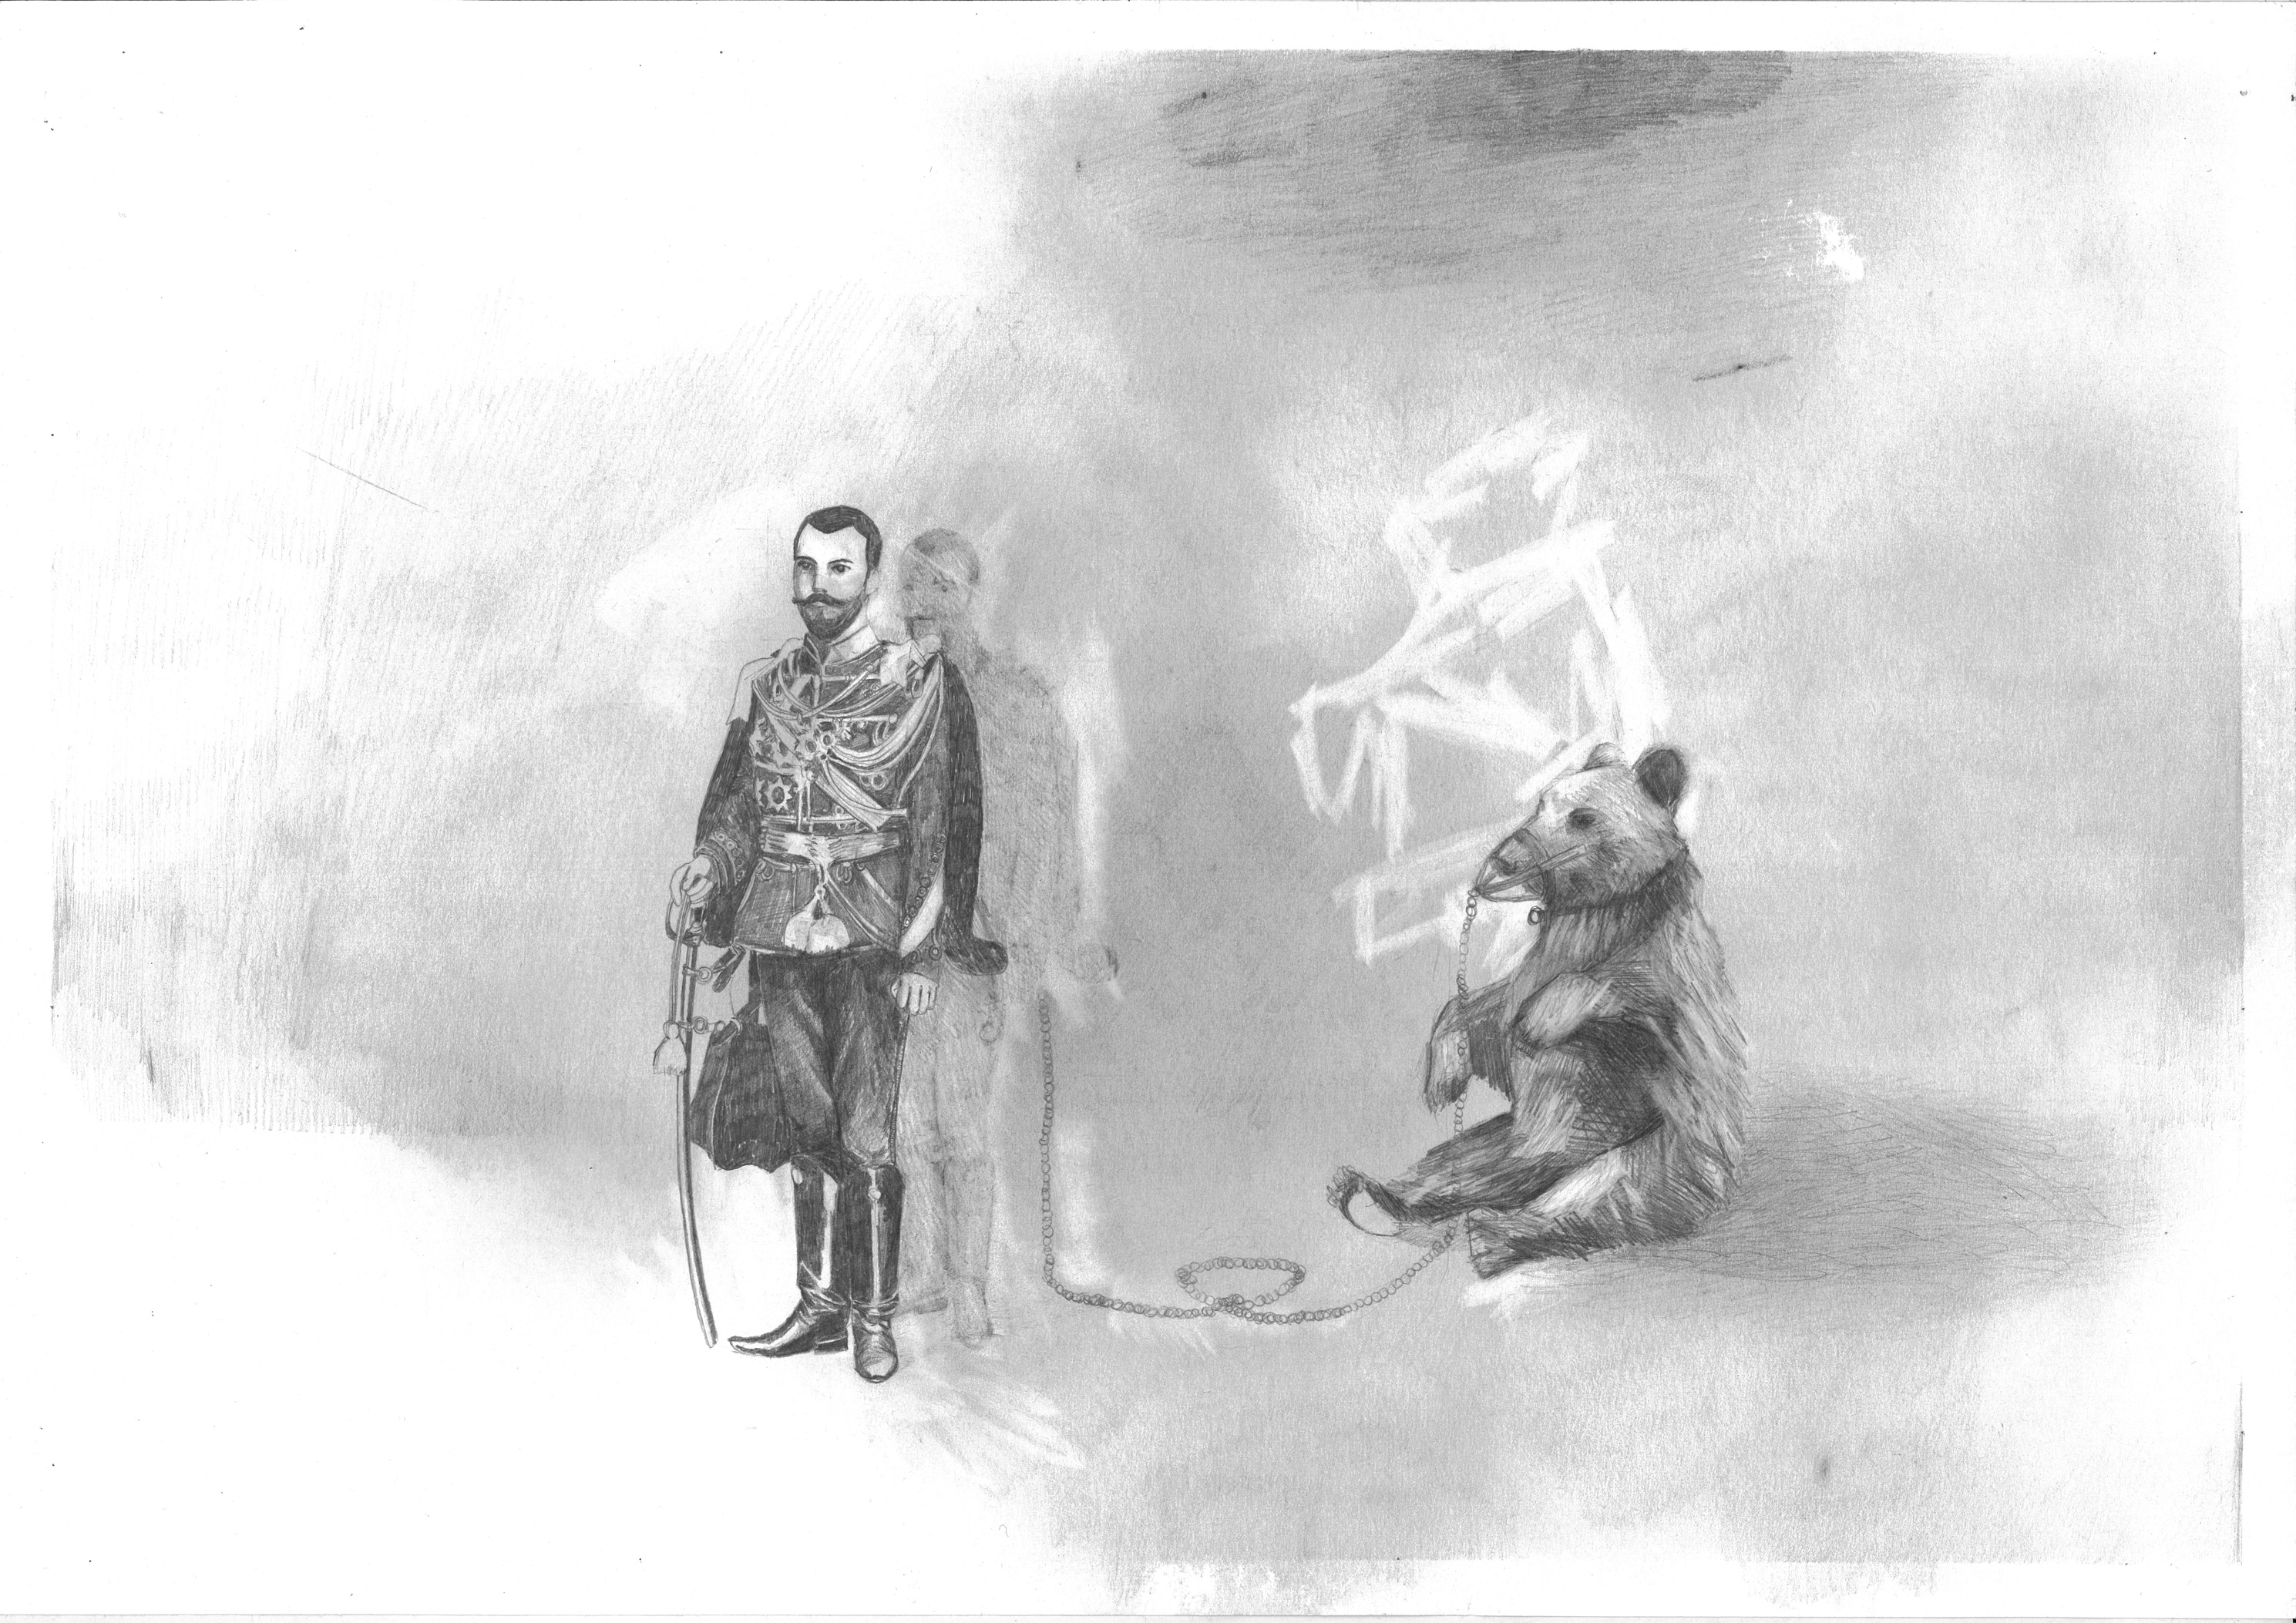 Danny Holcroft 'Tsar Nicholas II and the Bear' pencil on paper 30 x 42cm 2015 © Cultural Documents